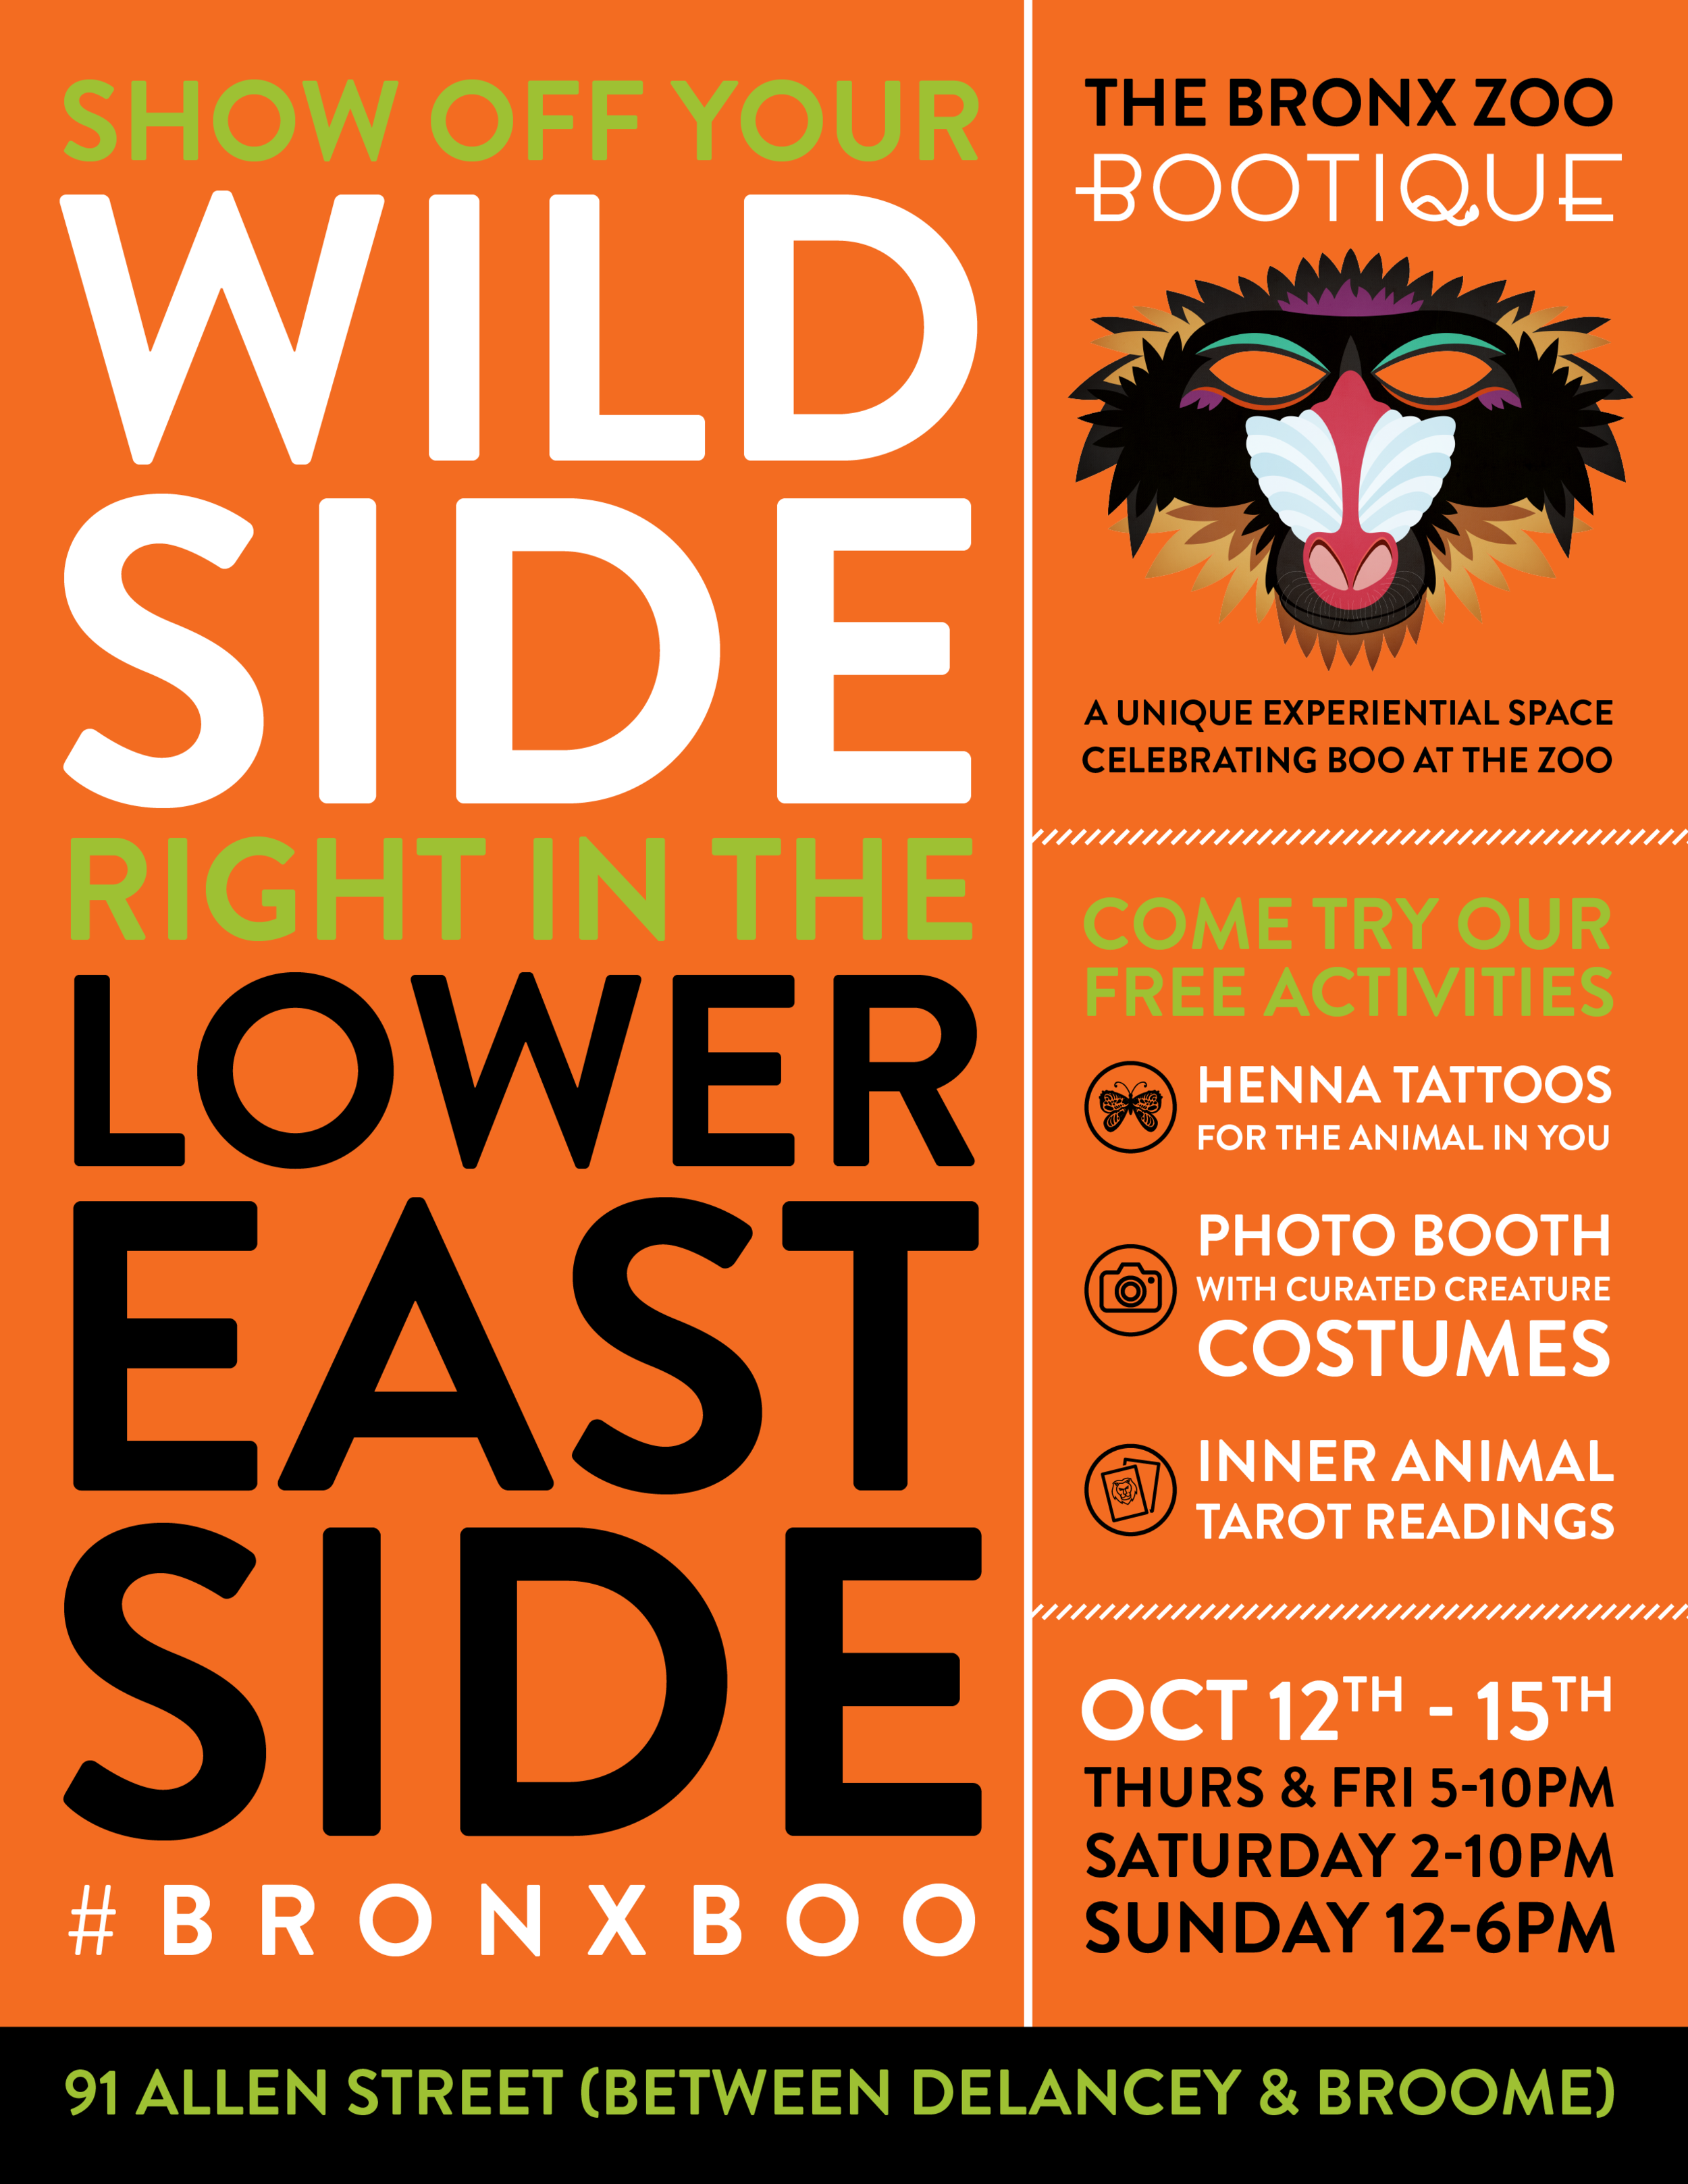 Bronx Zoo - Bootique  - We took the magic of Boo At The Zoo and brought it to Manhattan's trendy Lower East Side, opening the Bronx Zoo's first ever experimental pop-up space. We called it the Bronx Zoo Bootique.Nominated: Shorty Awards